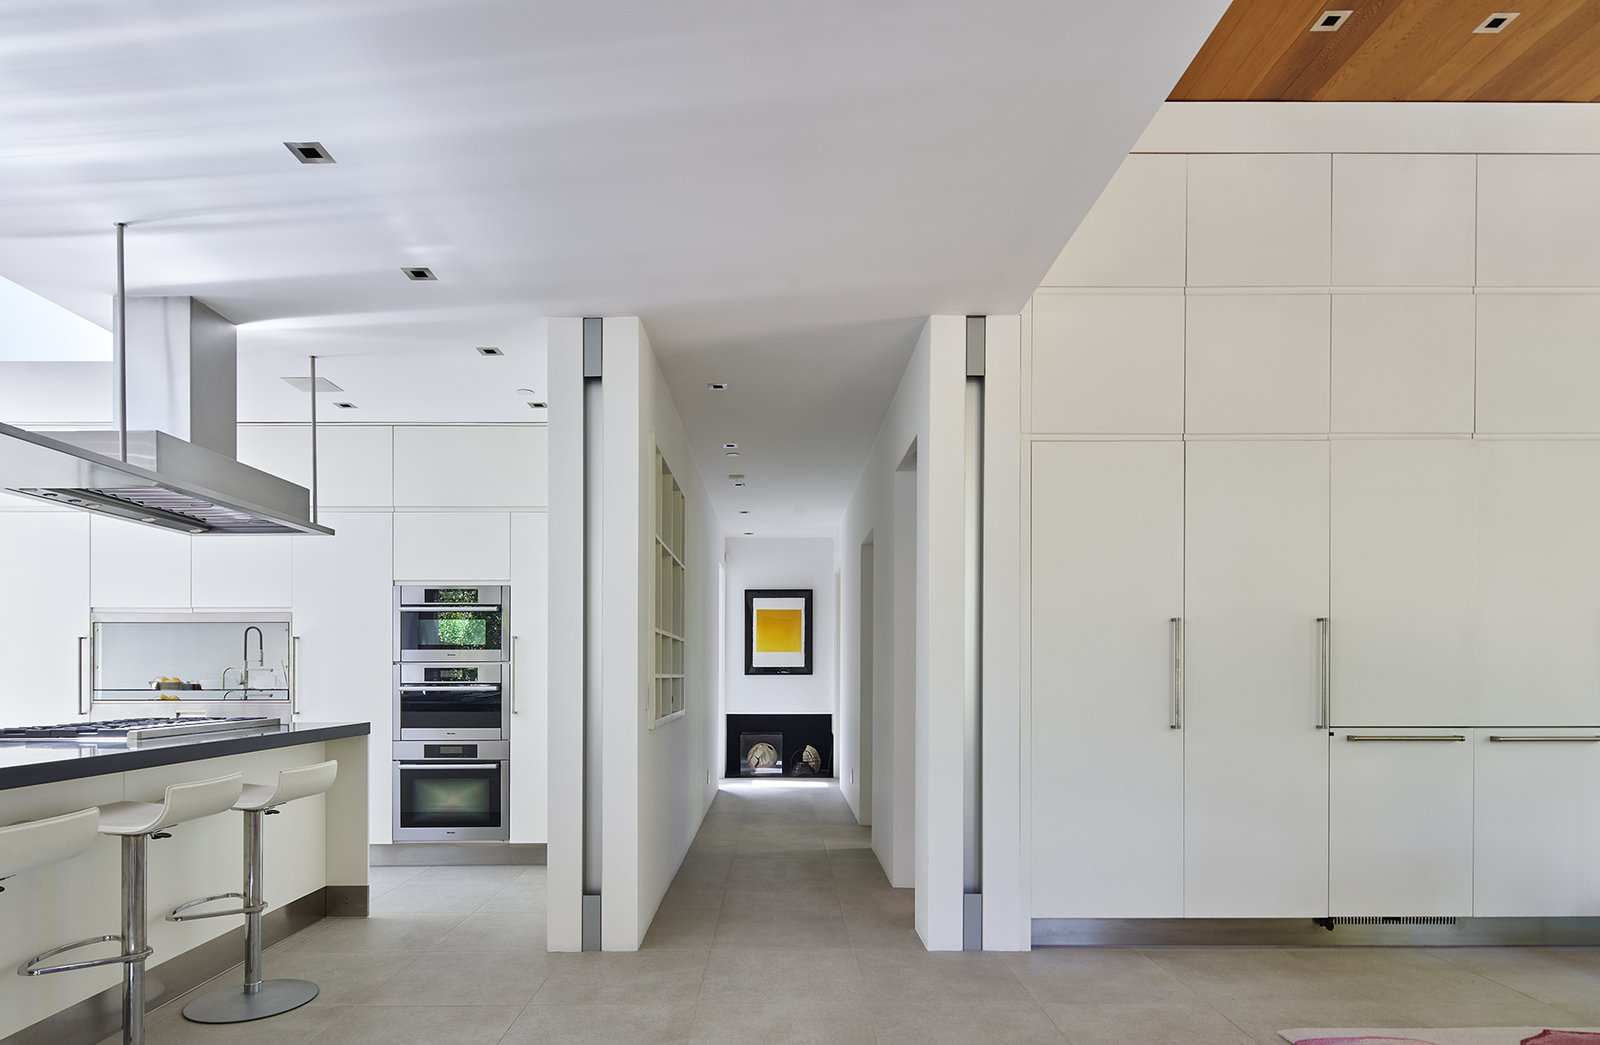 Kitchen, Microwave, Cooktops, Ceiling Lighting, Porcelain Tile Floor, Range Hood, Dishwasher, Undermount Sink, Wall Oven, Refrigerator, White Cabinet, Engineered Quartz Counter, and Mirror Backsplashe Entry, kitchen, dining.  The TORO House by Mark English